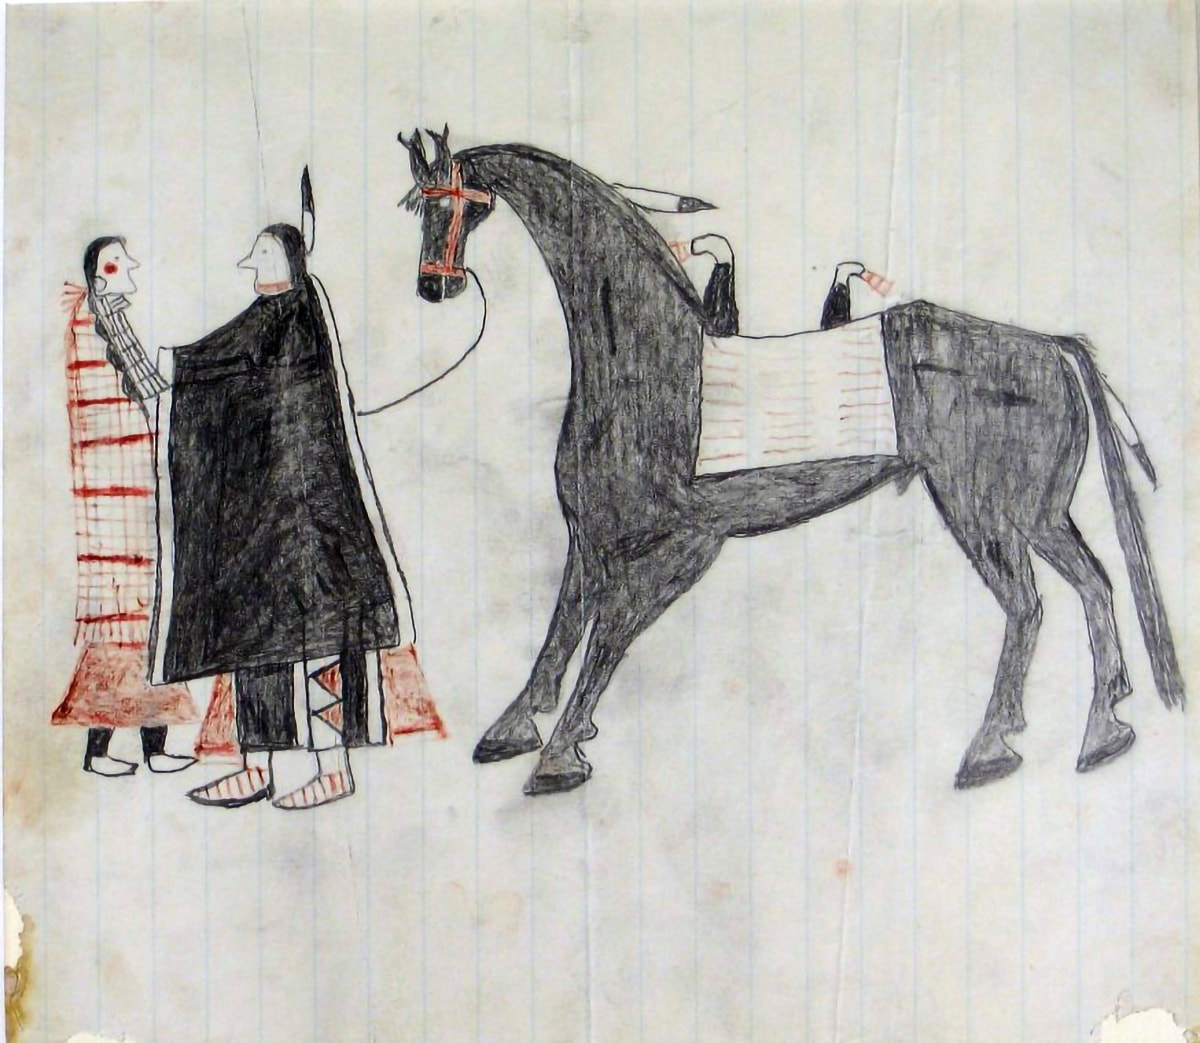 Rectangular line drawing with no modeling on lined white ledger paper (light blue vertical lines). Two figures in profile facing one another stand to left. A large black horse faces the couple in profile, taking up the remaining two thirds of the drawing. The young woman, far left, wears a red-and-white patterned blanket over a red skirt with black leggings and white moccasins. Her black hair is in braids and she has a red circle on her cheek, a bone or shell necklace indicated by black grided lines, and hoop-style earring. The young man figure wears a black blanket with a white stripe at each side, over black leggings with red and white triangle designs, and red and white-striped moccasins. A red stripe is painted along his jawline and a black-tipped white feather is attached to the back of his hair. The horse wears a red bridle, a white double-horned saddle depicted as a rectangle with three rows of horizontal stripes, and a black-tipped feather on his mane and tail. There is no background and the edges of the paper are torn and stained.